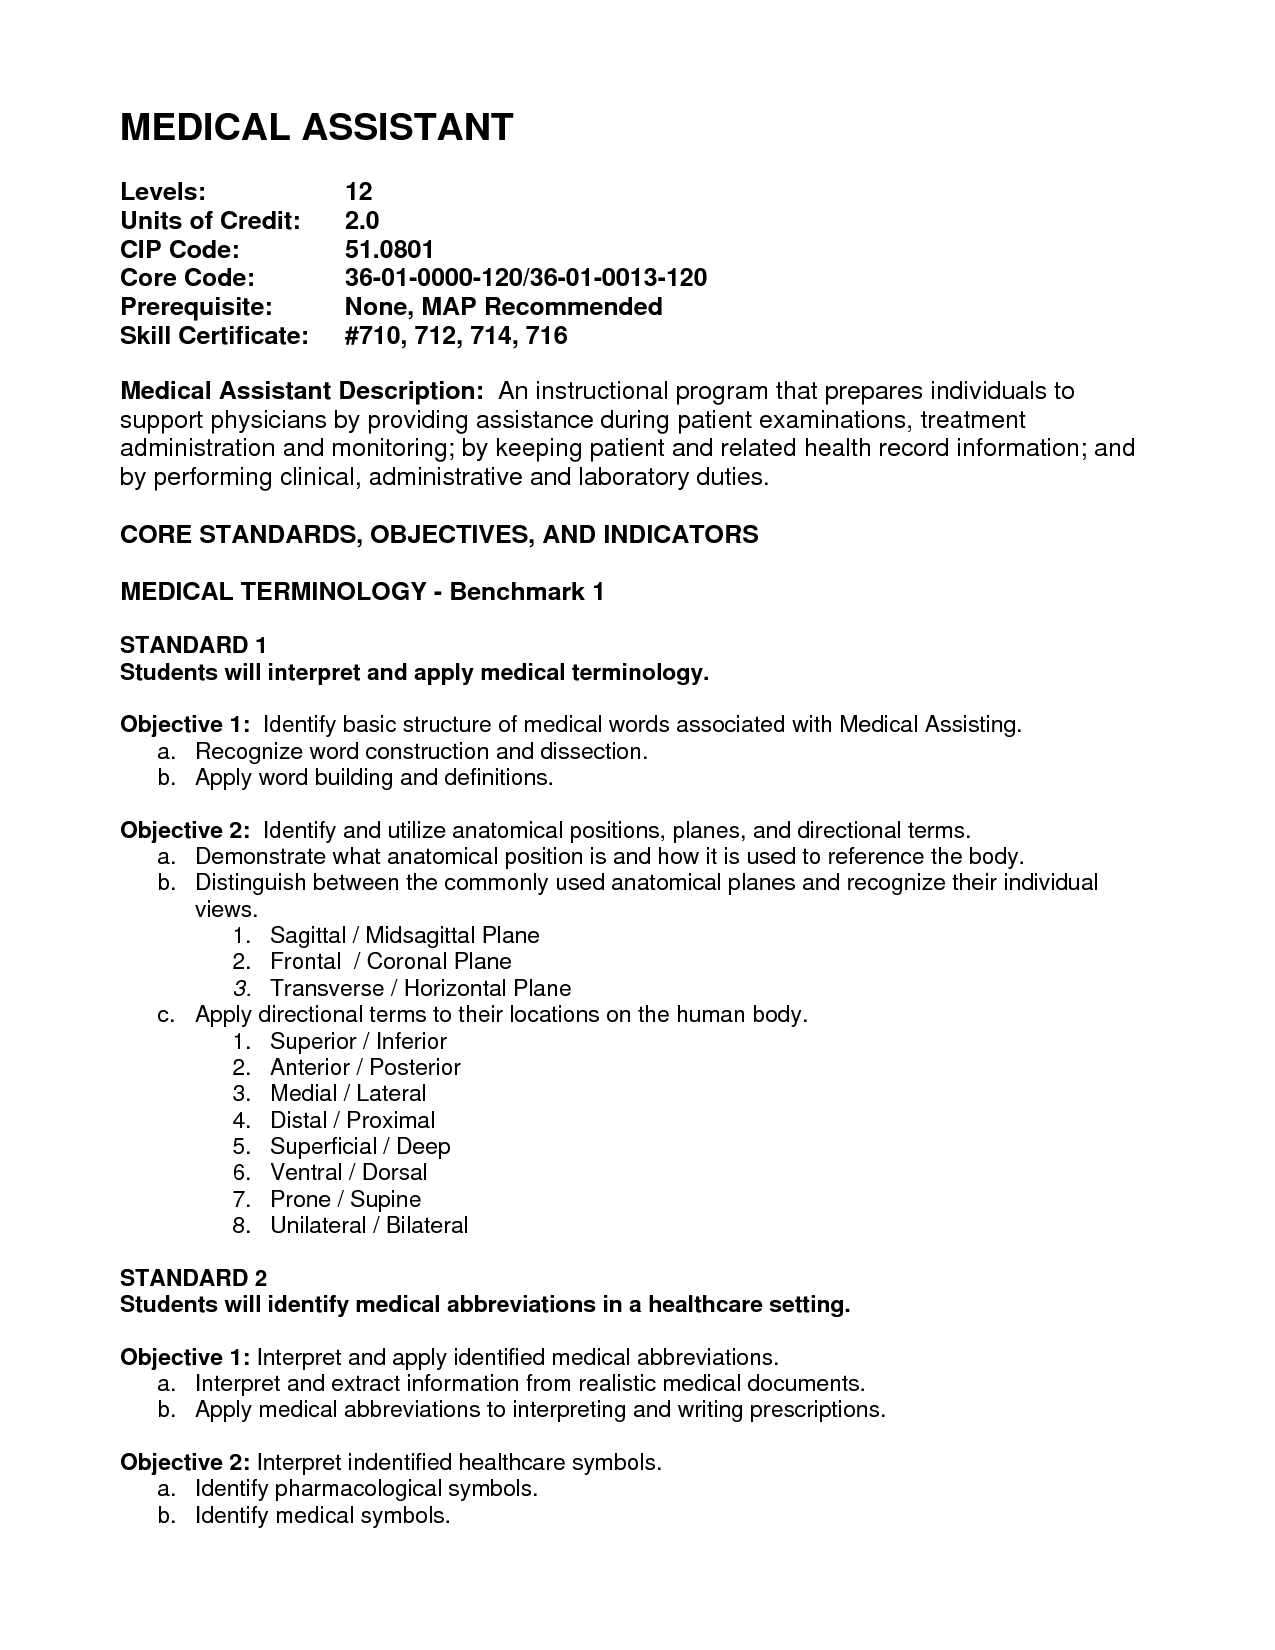 Medical Assistant Resume Template Resume For Certified Medical Assistant  Httpwwwresumecareer